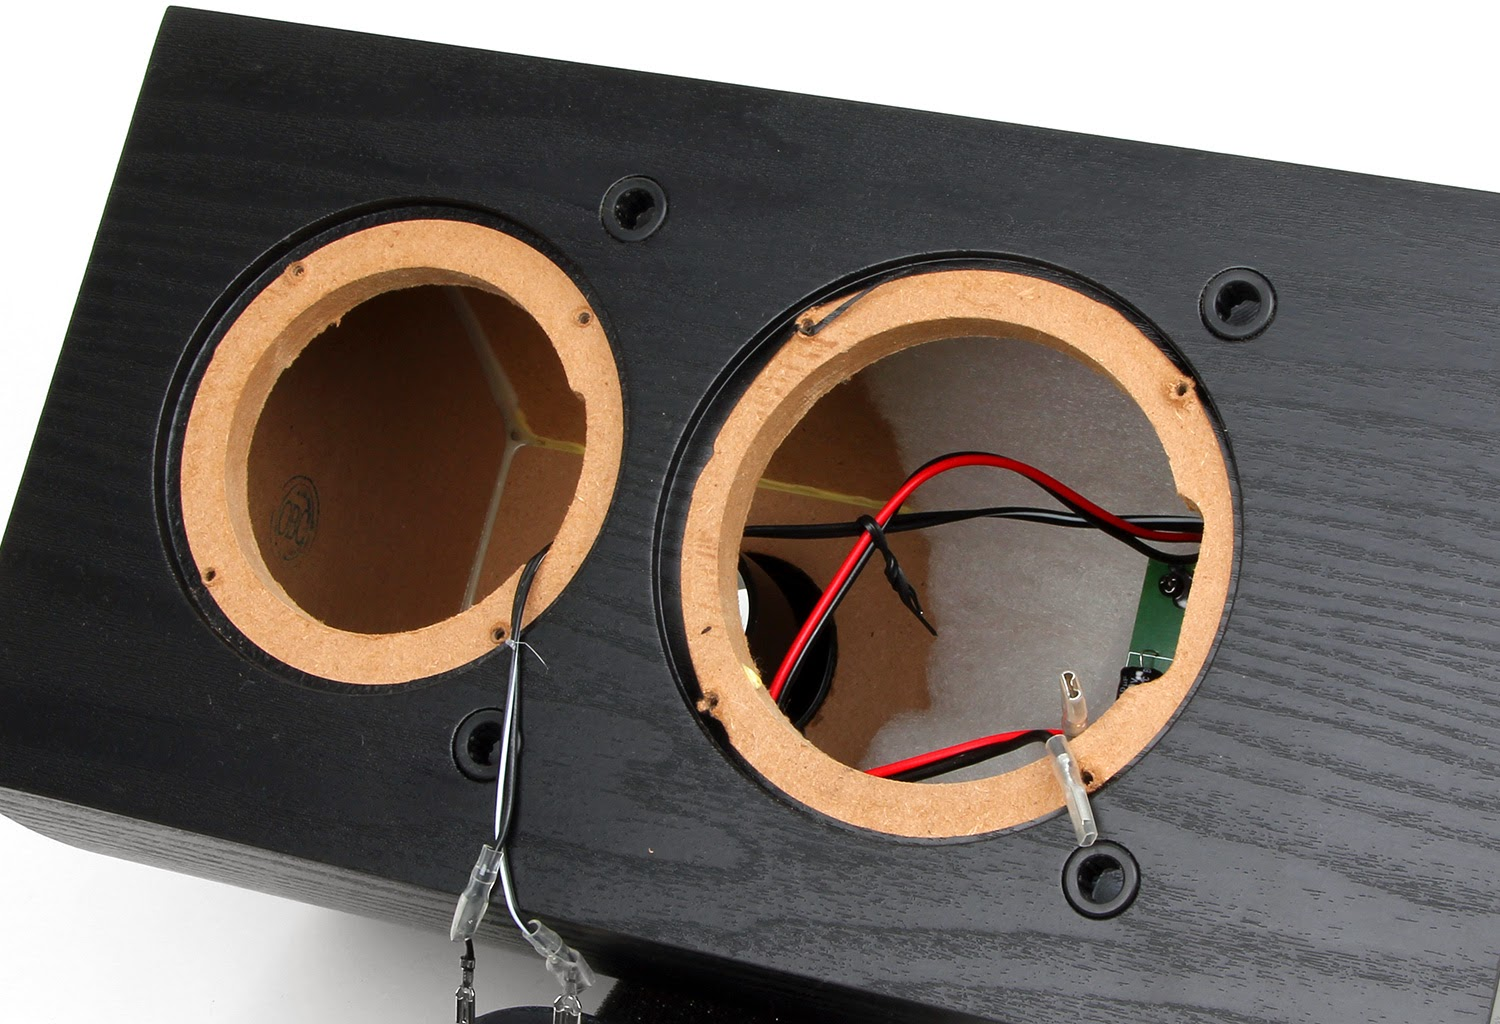 Budget Wiring The Reality Of Copper Clad Aluminum Wire Budgetphile Vs Tweeter Is A Full 1 Soft Dome Unit With Pronounced Waveguide Front Bezel Bezels Are All Rage In Contemporary Speaker Designs For Their